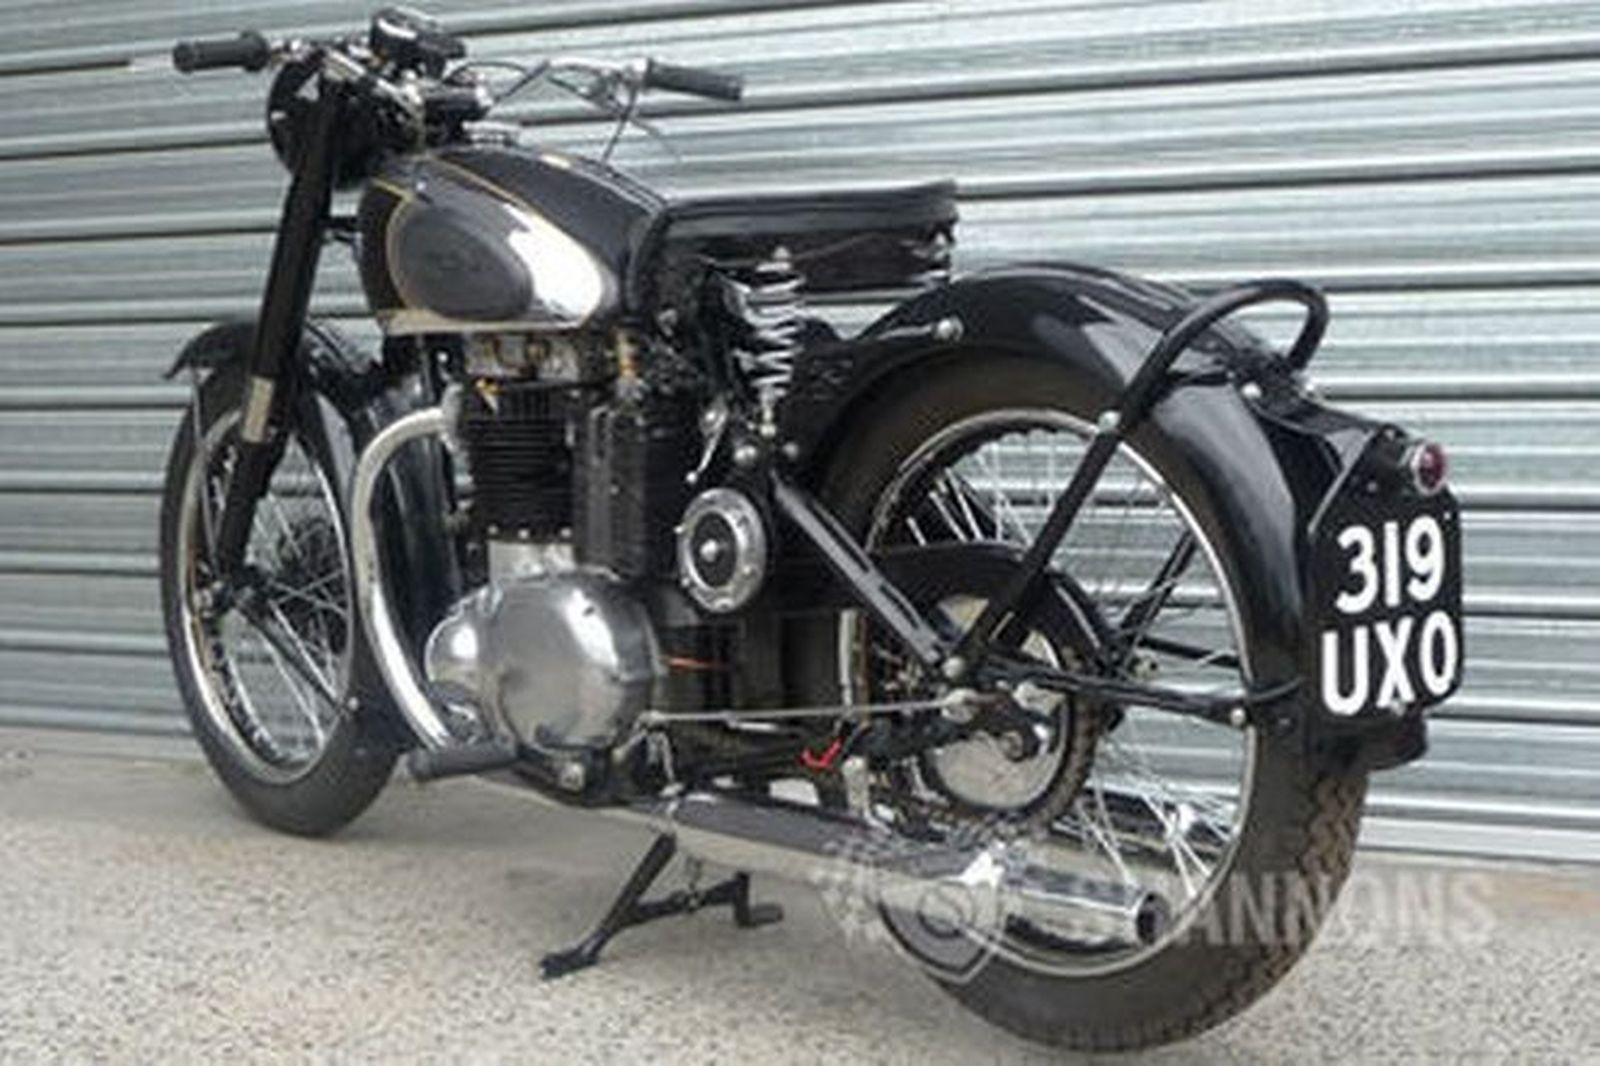 Sold bsa a7 500cc solo motorcycle auctions lot 28 for Motor vehicle open on saturday